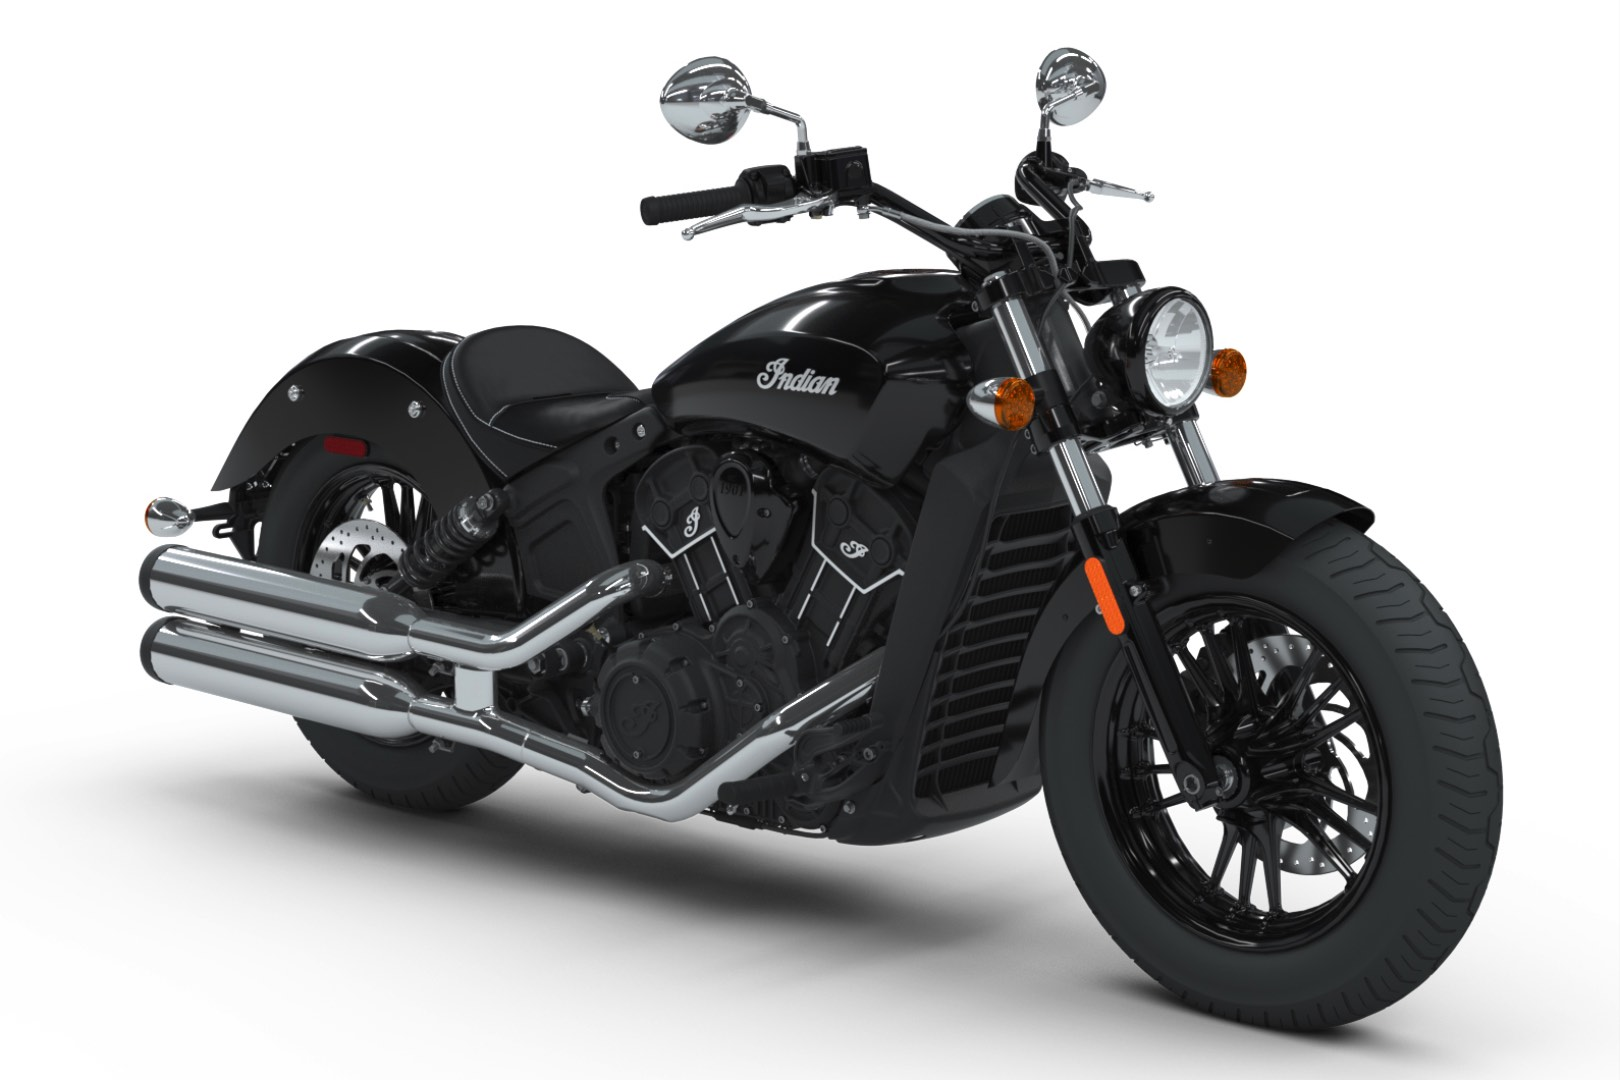 Dirty Dozen: 12 Great 2019 Cruiser Motorcycles Under $10,000